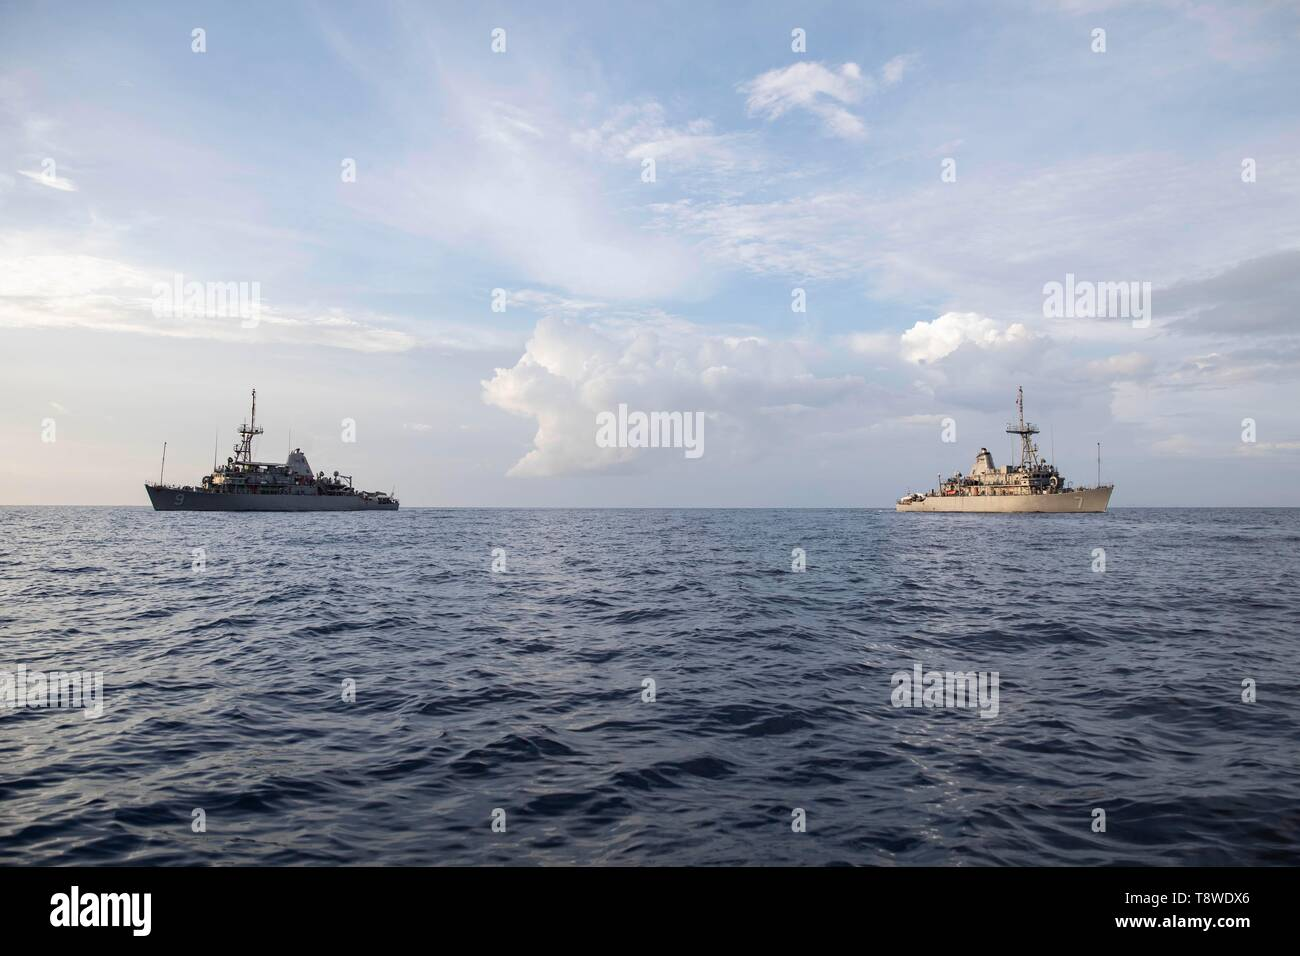 190508-N-AD347-1245 SOUTH CHINA SEA (May 8, 2019) The Avenger-class mine countermeasures ship USS Pioneer (MCM 9) and her sister ship USS Patriot (MCM 7) underway. Both Pioneer and Patriot, part of Mine Countermeasures Squadron 7, are operating in the U.S. 7th Fleet area of operations to enhance interoperability with partners and serve as a ready-response platform for contingency operations. (U.S. Navy photo by Lt. j.g. Alexander Fairbanks) - Stock Image